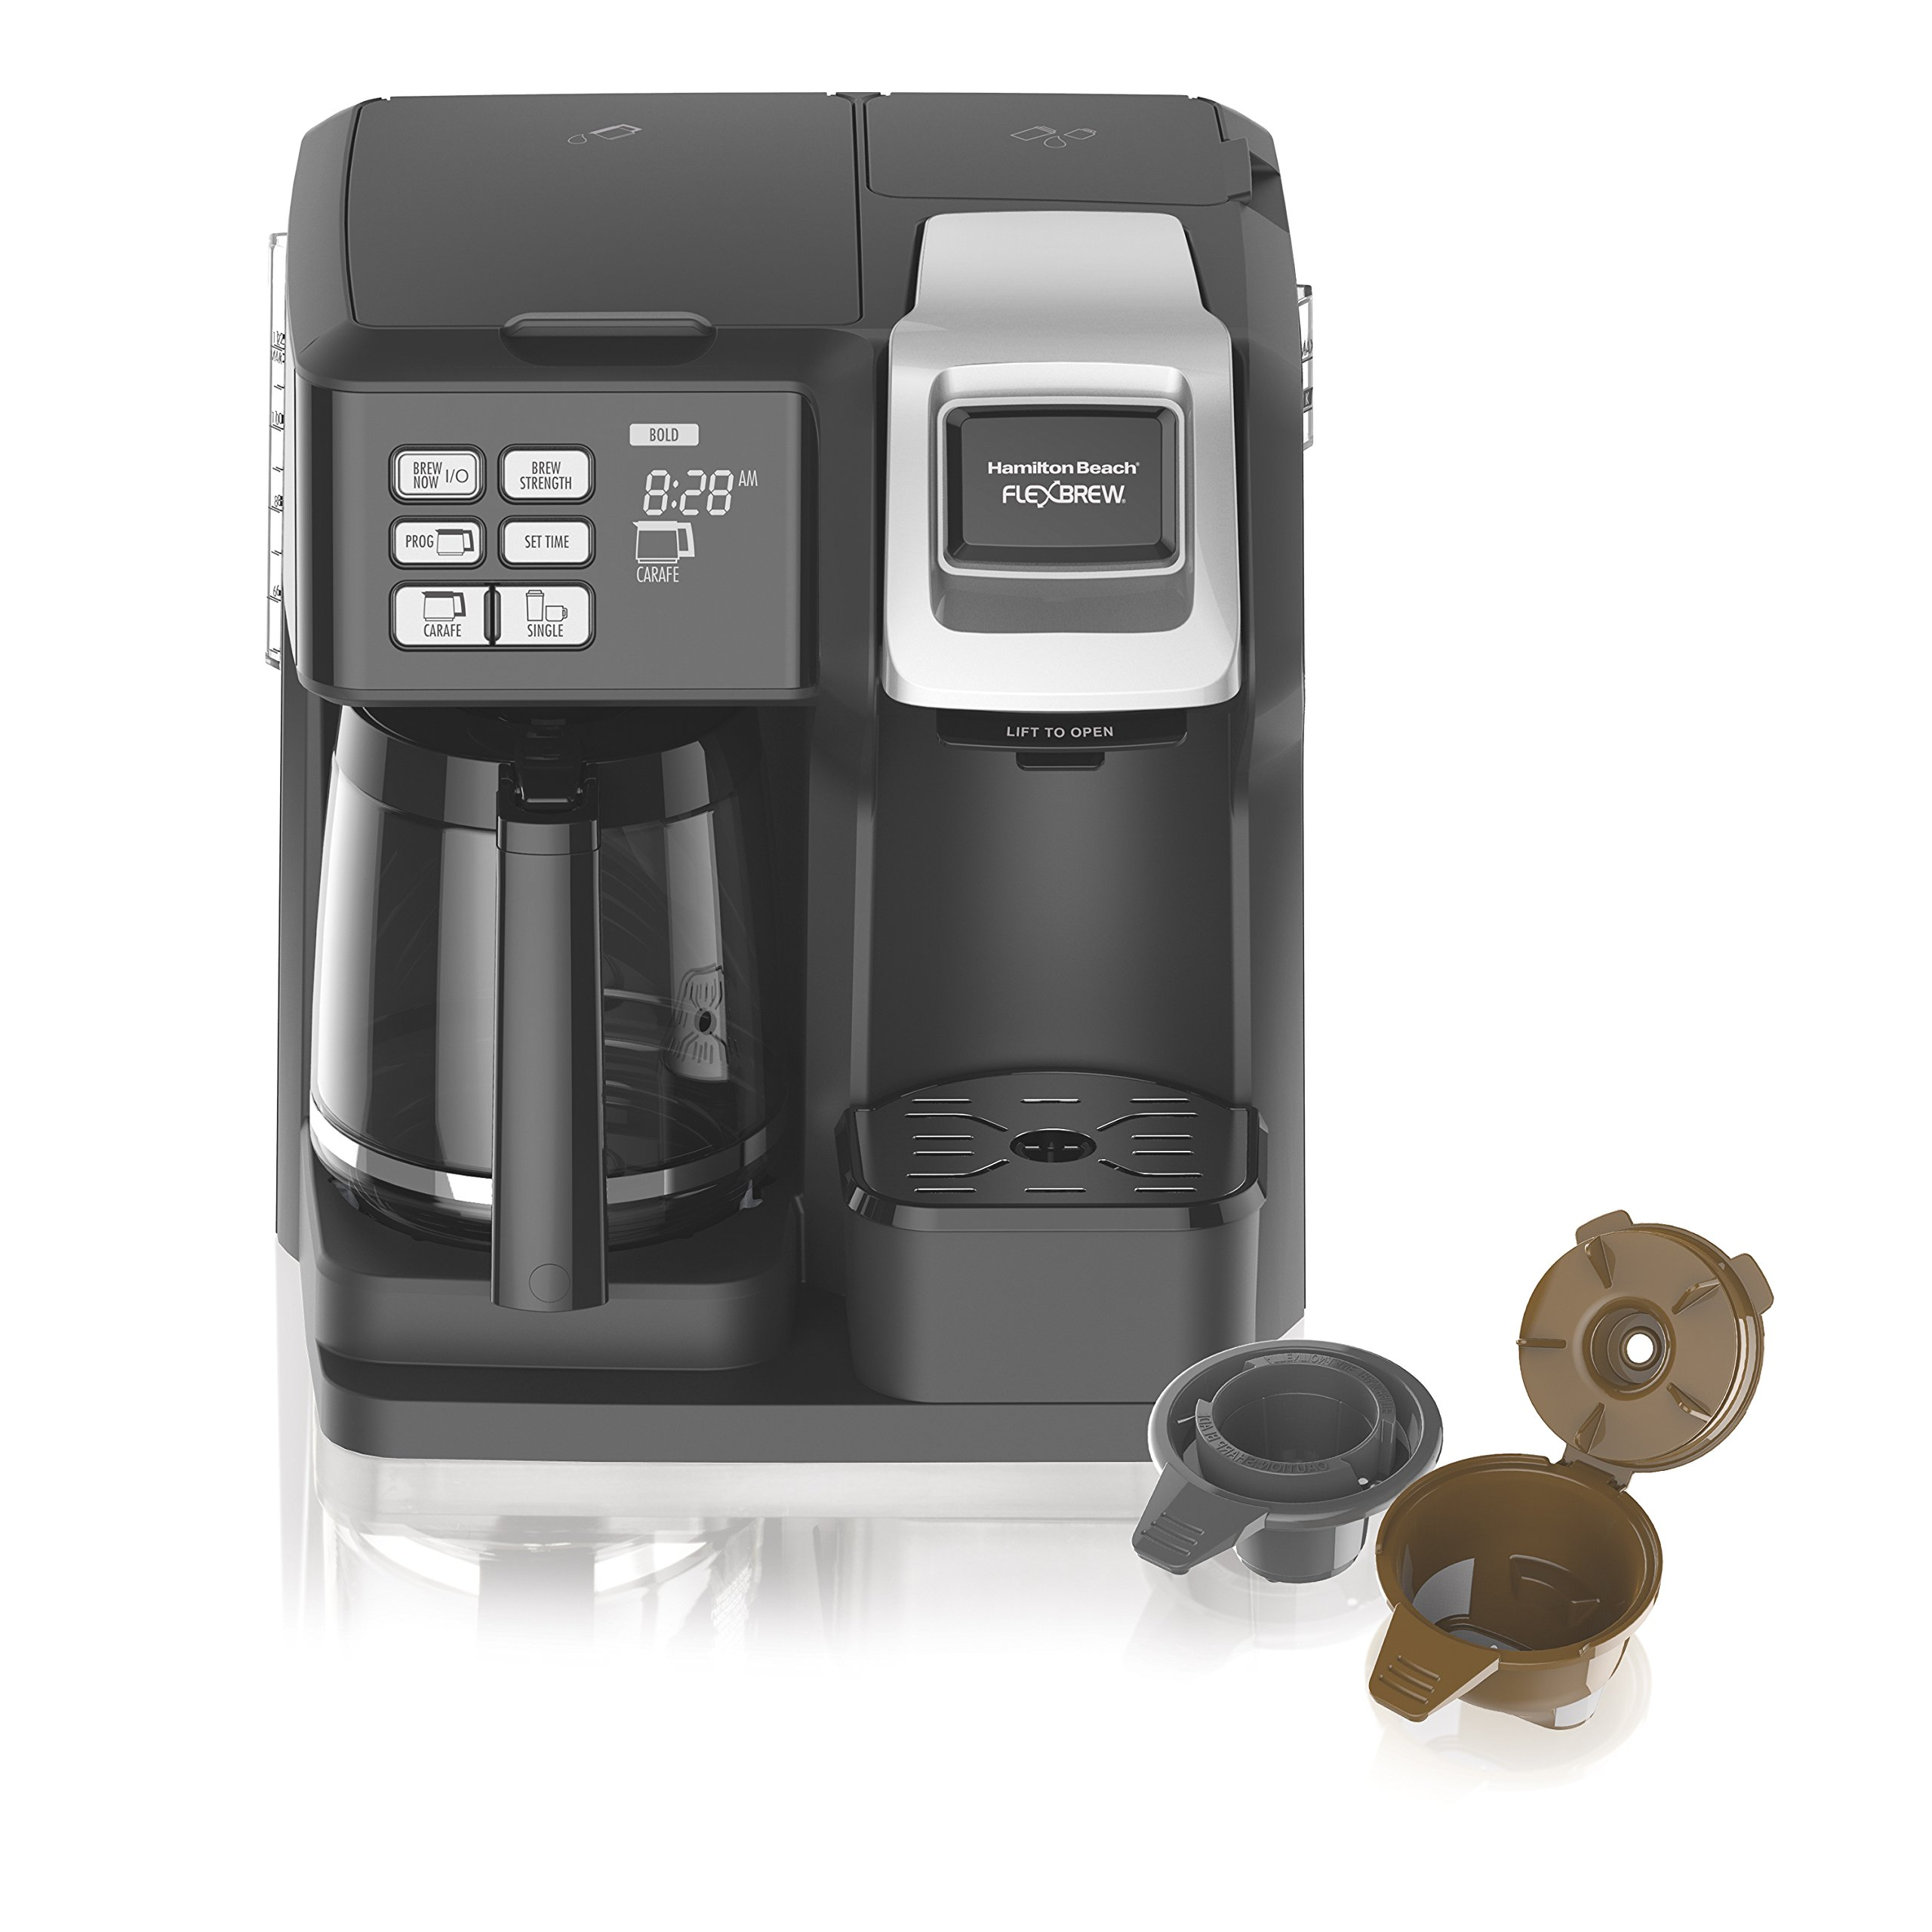 Hamilton Beach 49976 Flex brew 2-Way Brewer Programmable Coffee Maker, Black by Hamilton Beach